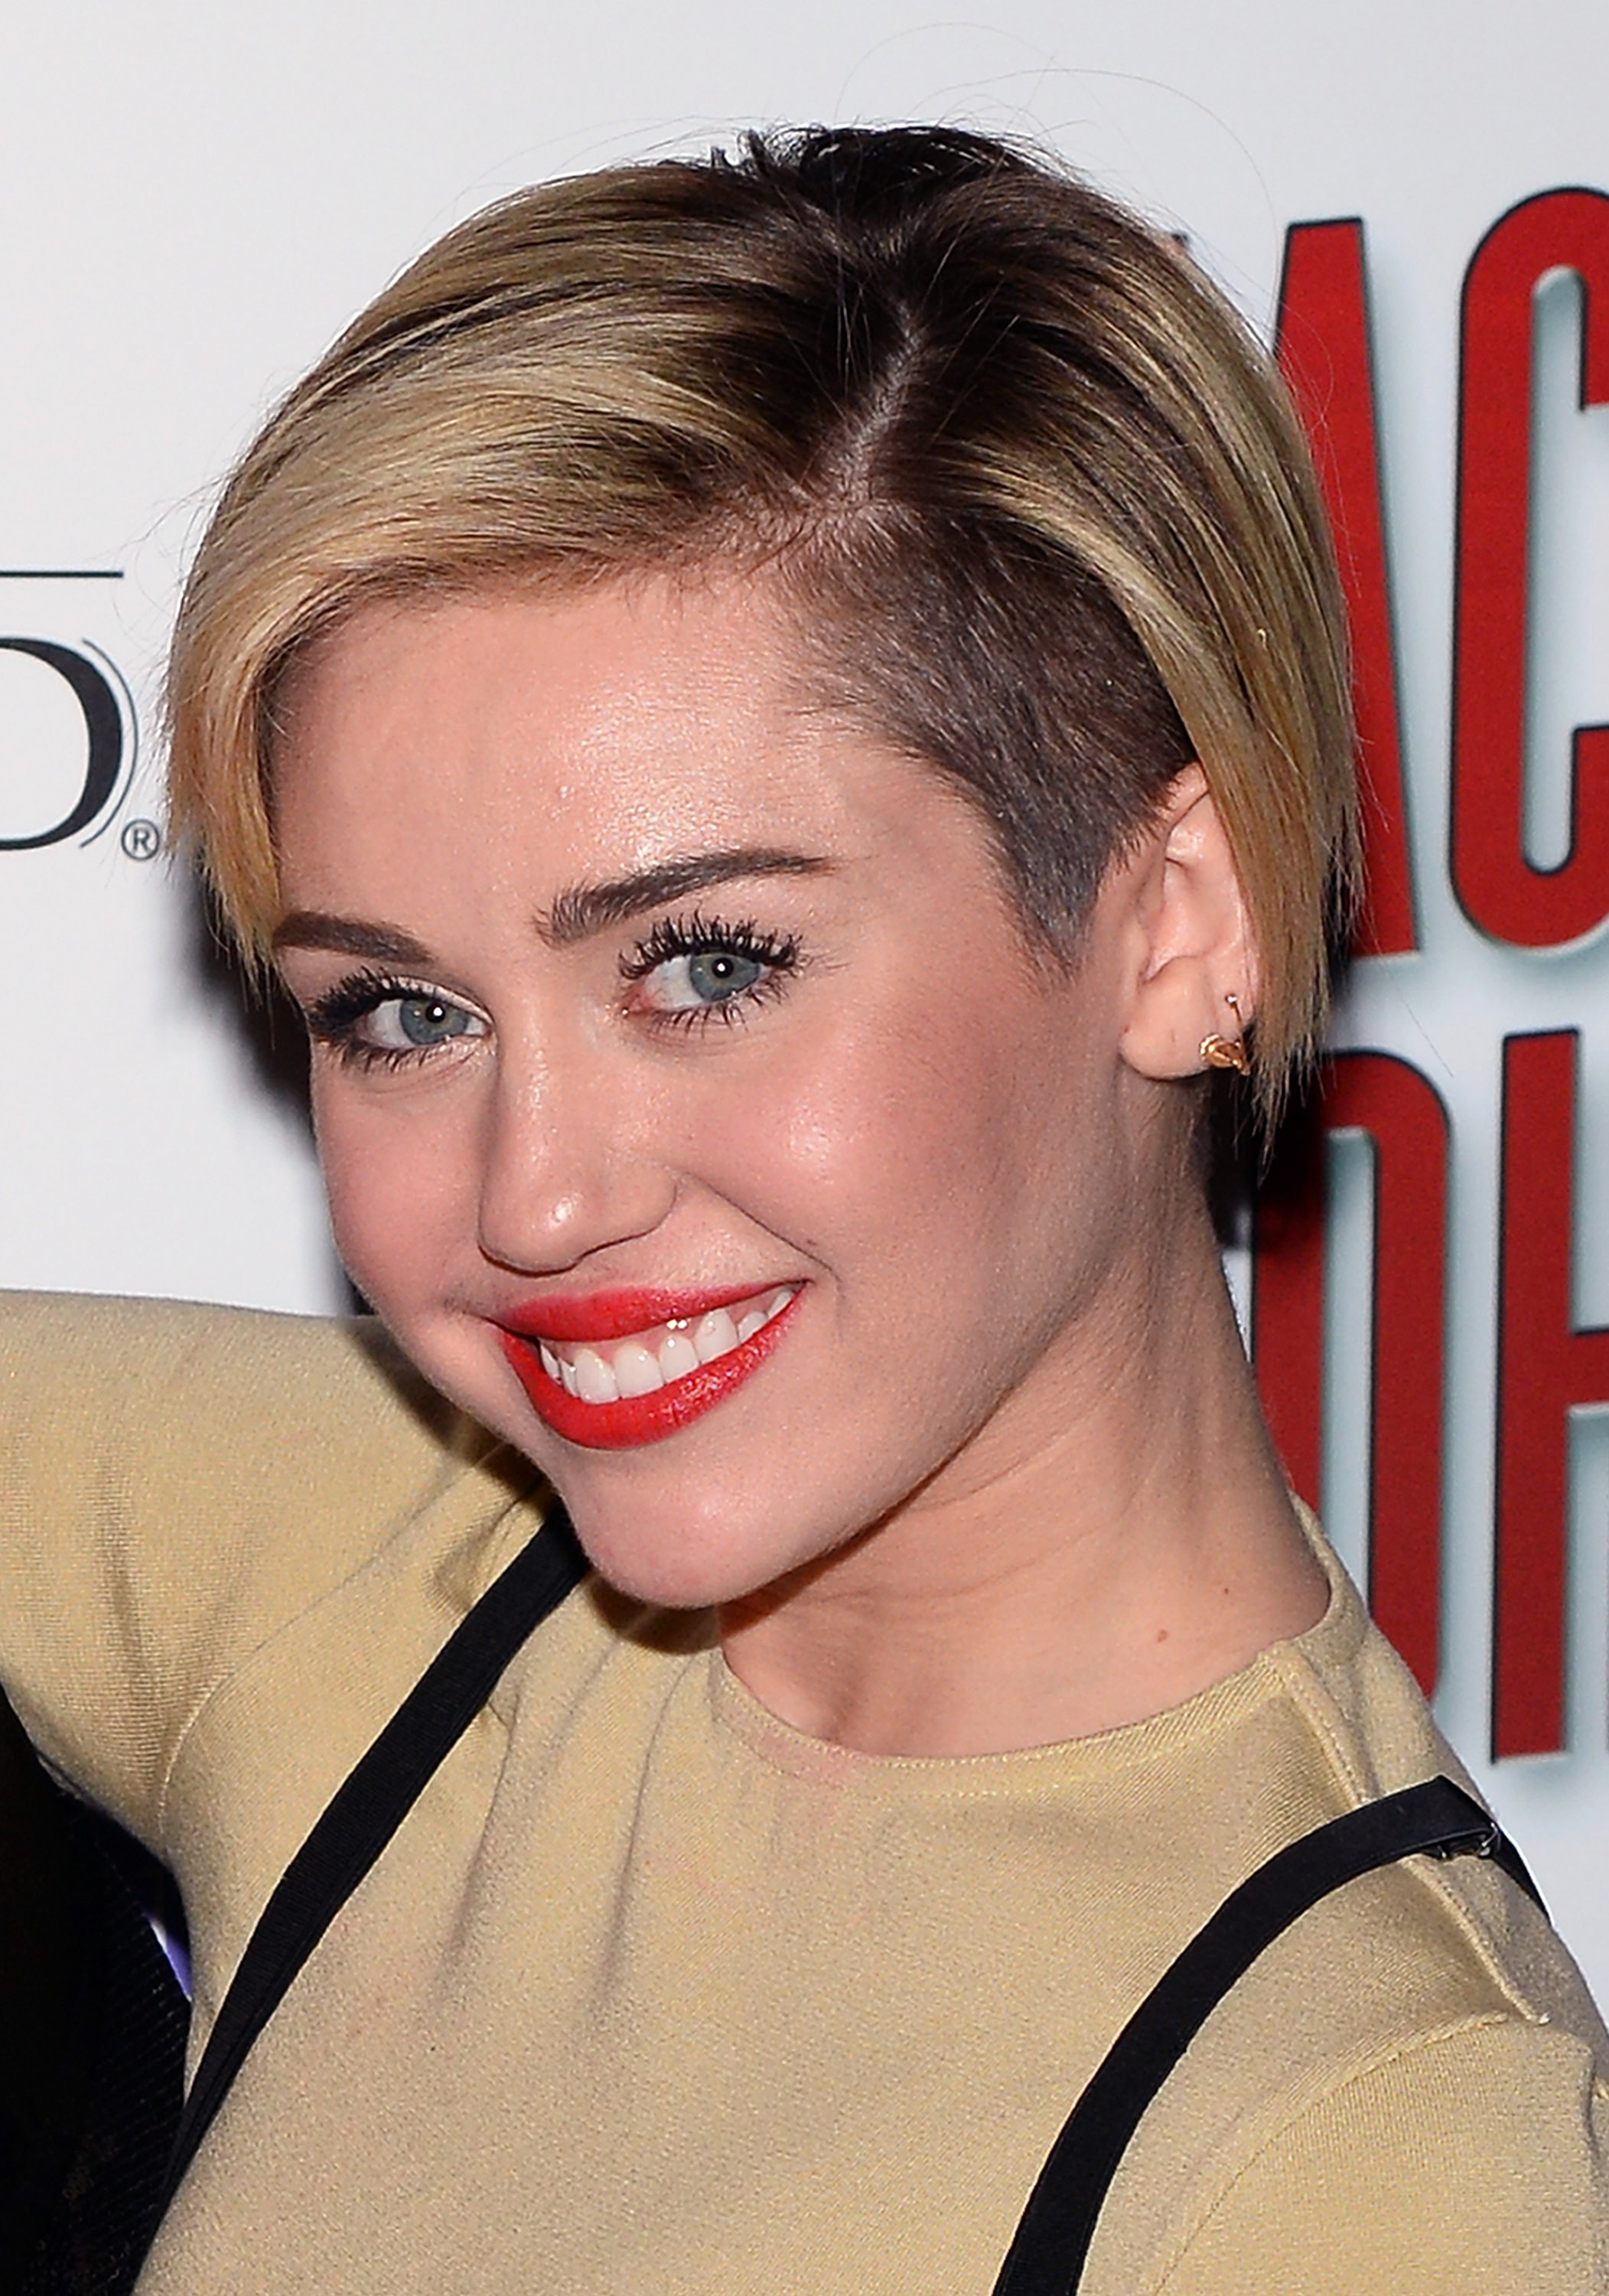 Miley Cyrus Grows Out Her Pixie Haircut Stylecaster